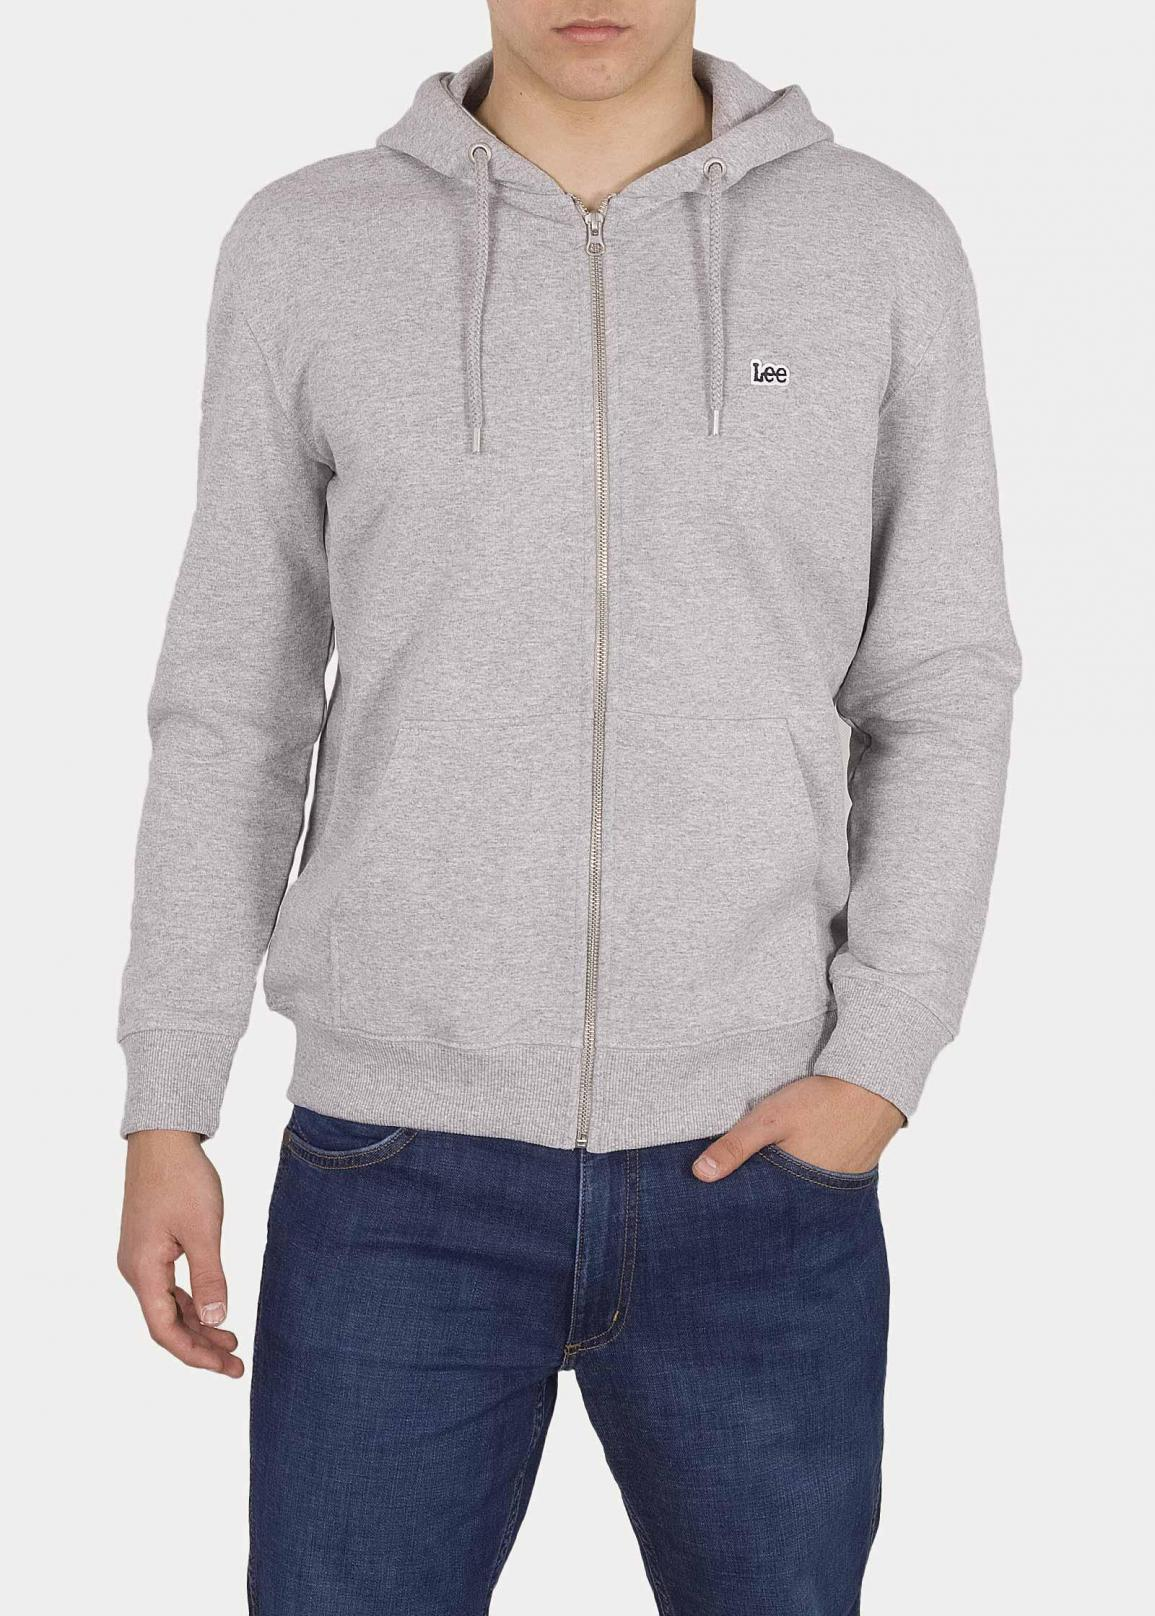 Lee® Basic Zip Throuh Hoody - Grey Mele